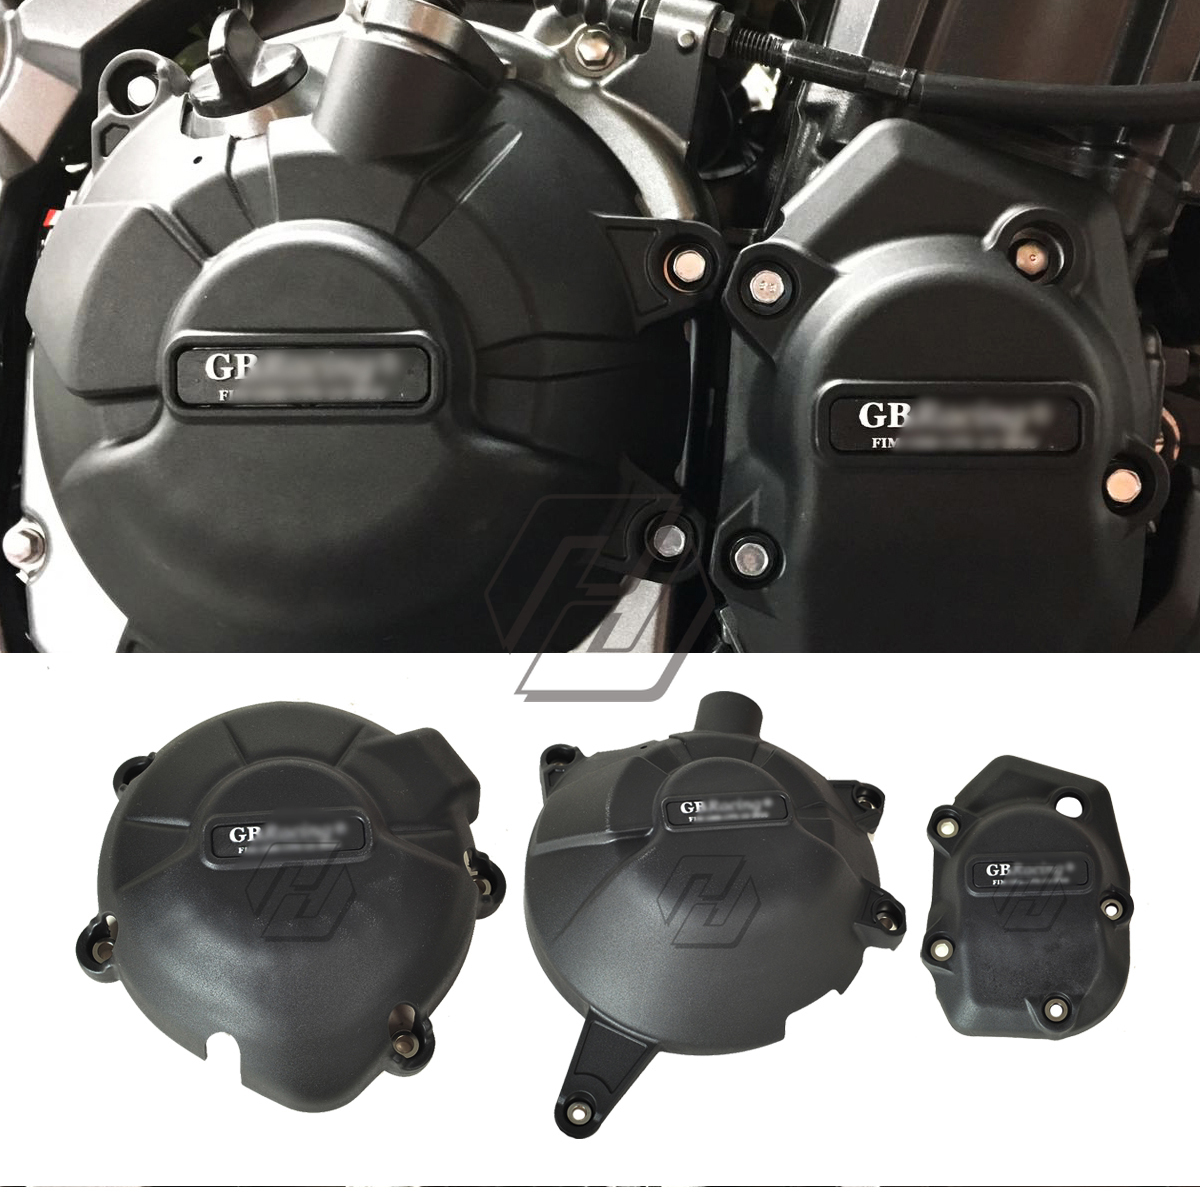 Motorcycle Engine Cover Water Pump Covers Set Case for GB Racing for <font><b>Kawasaki</b></font> NINJA <font><b>Z900</b></font> 2017 2018 <font><b>2019</b></font> image